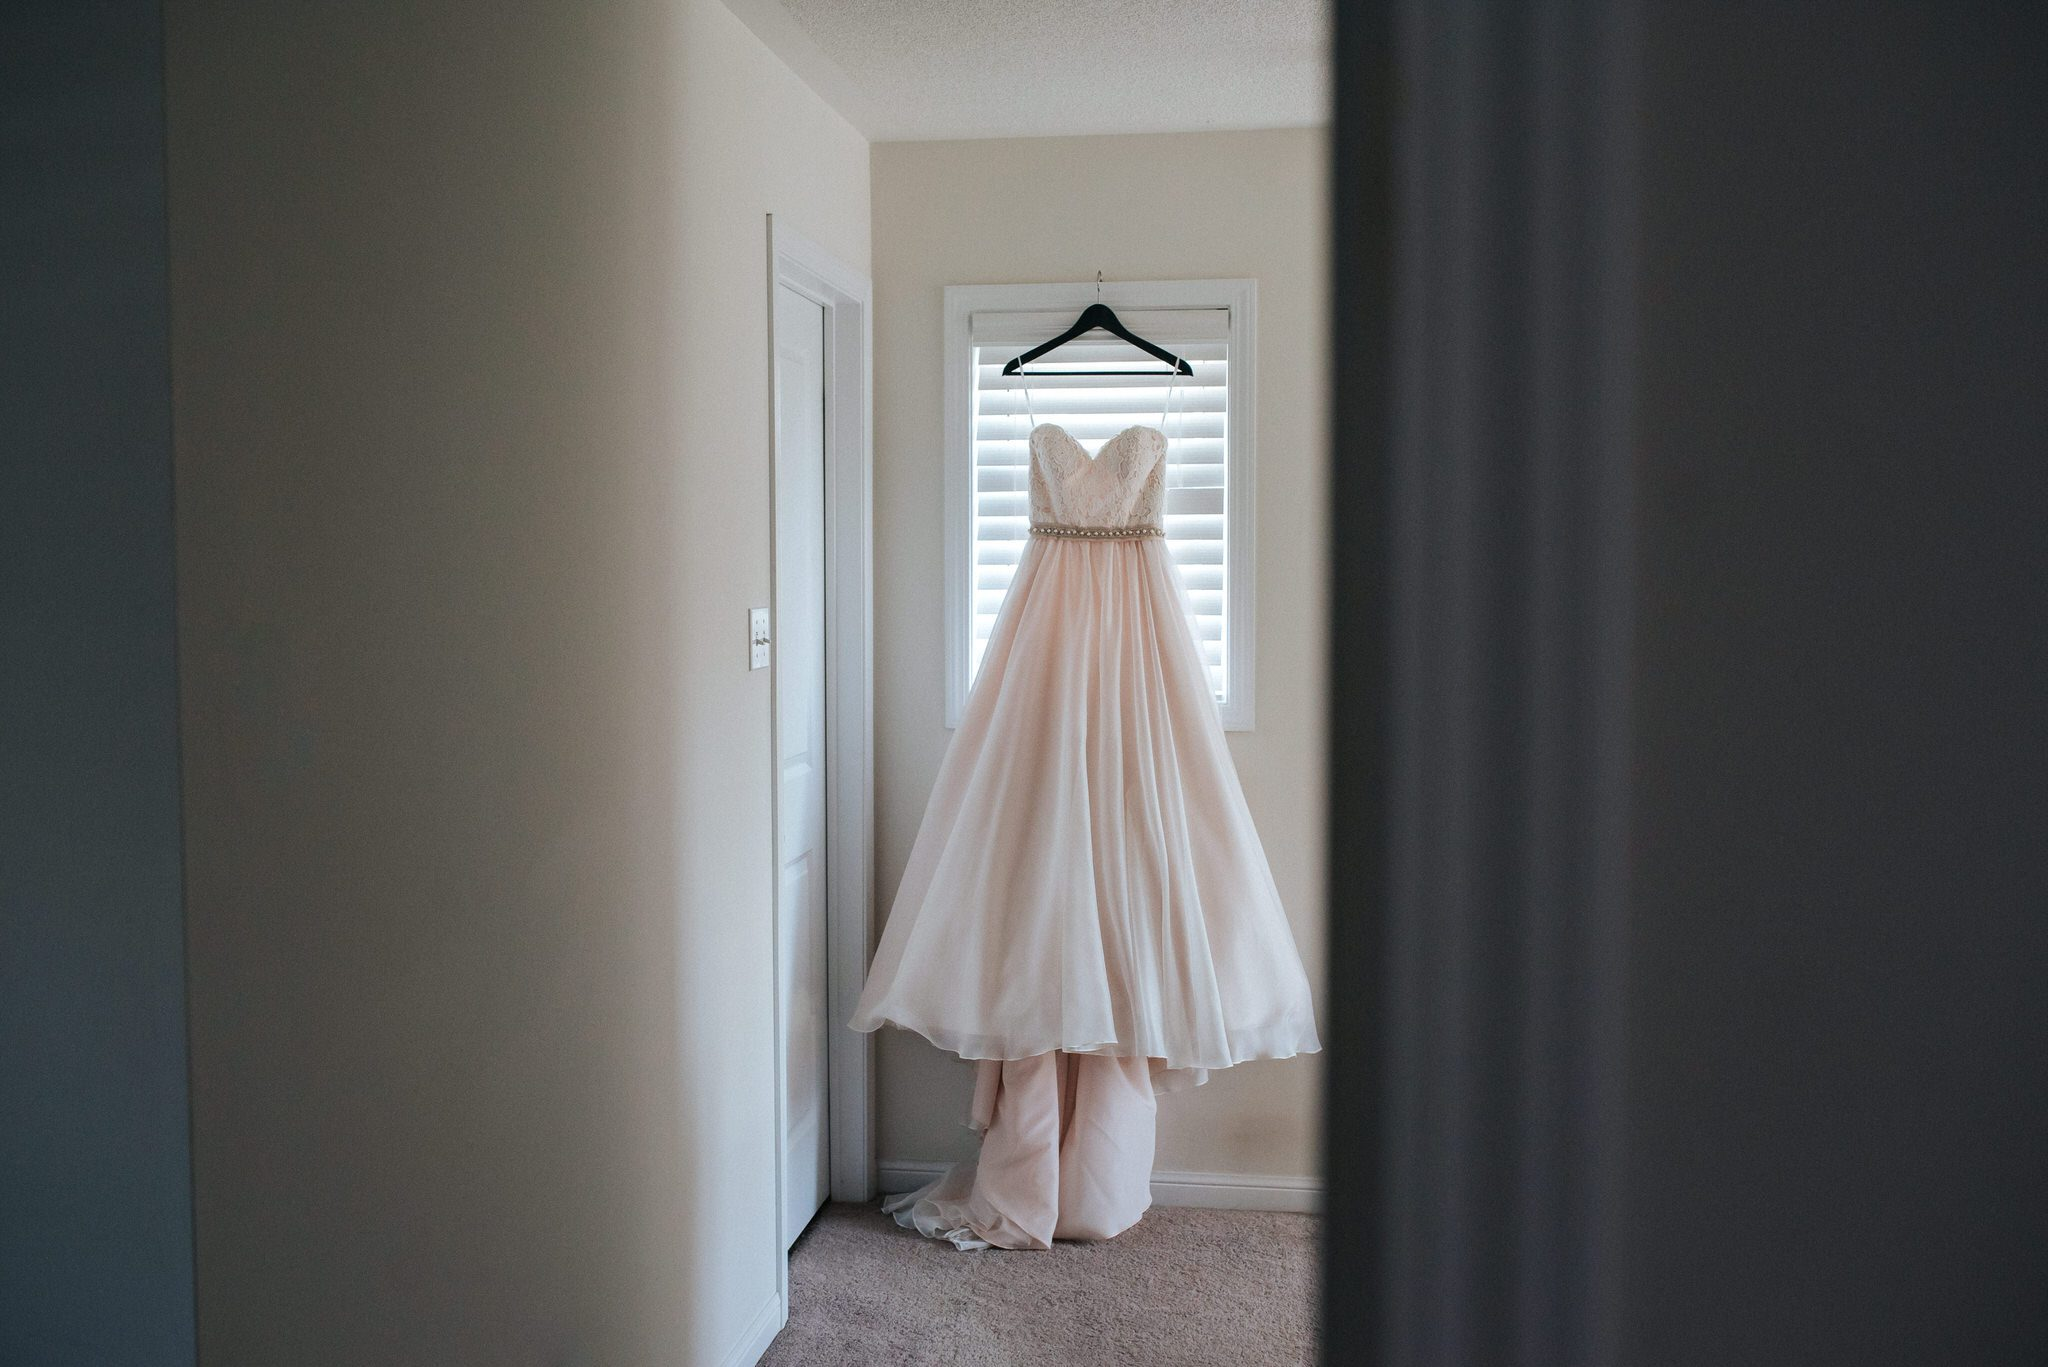 Bloomfield Gardens Wedding - Blush wedding dress hangs in window.